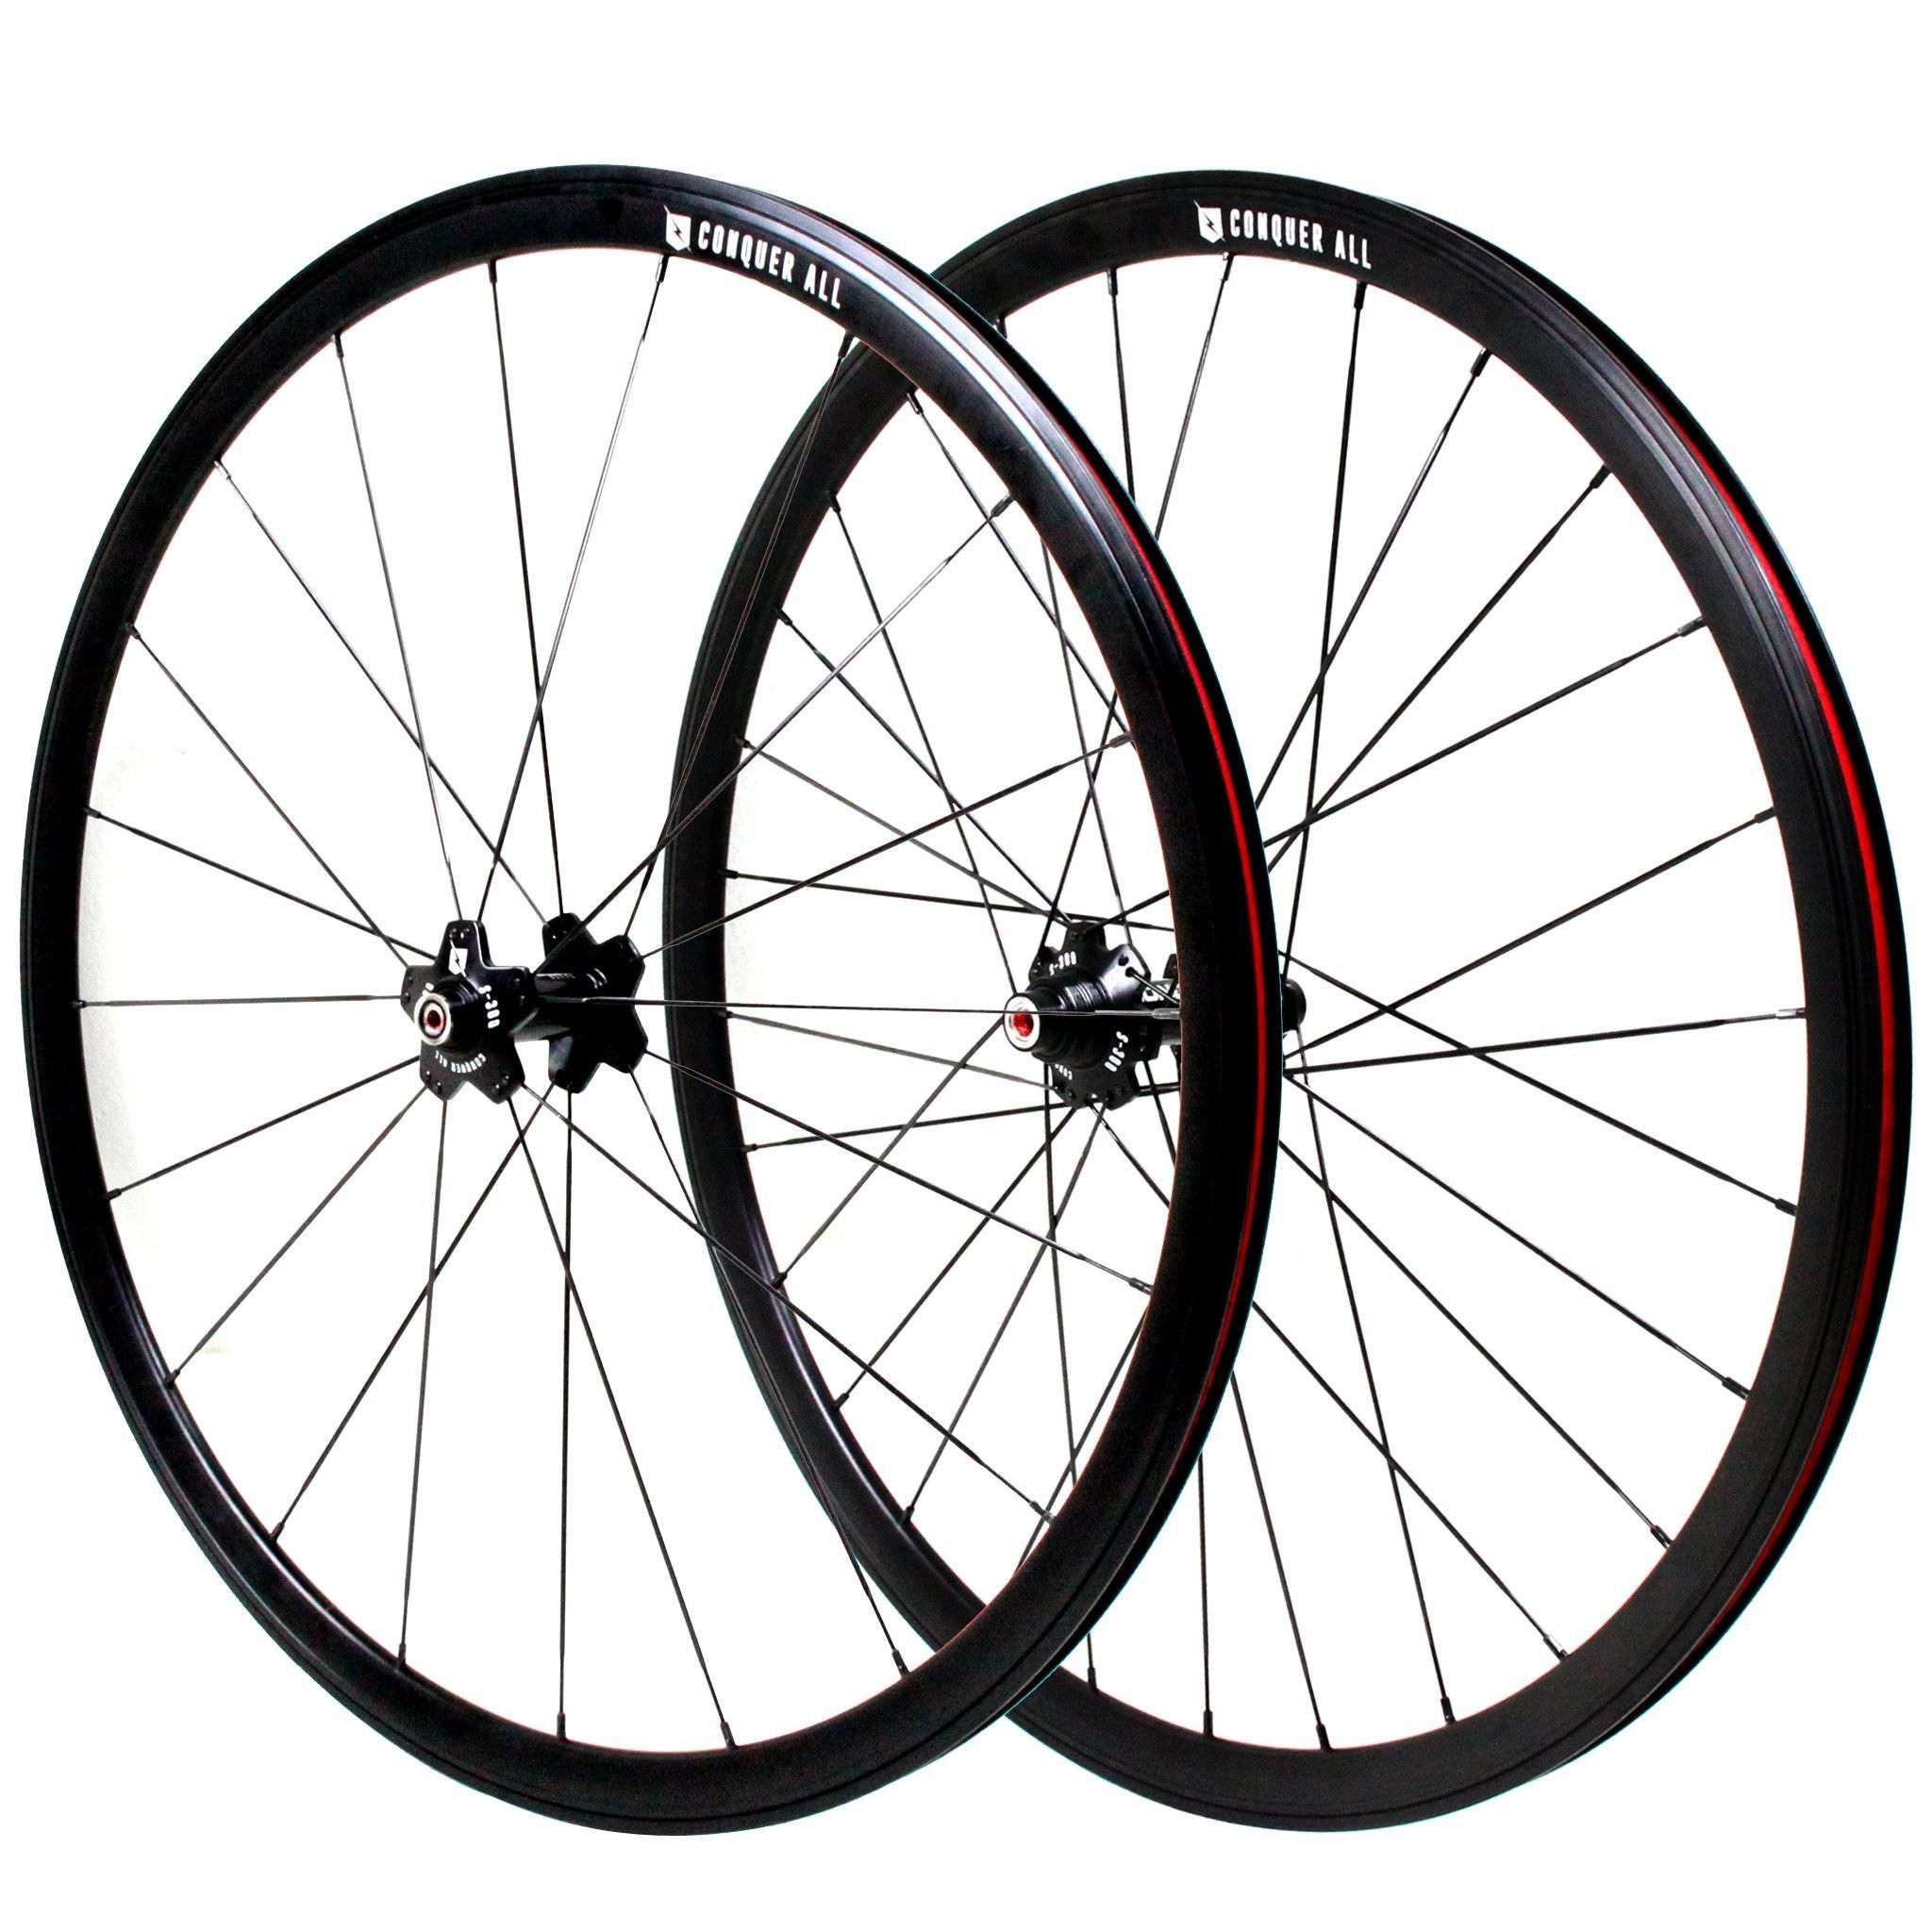 Conquer Elite S-300 Fixed Gear Wheels | Pinterest | Gear wheels